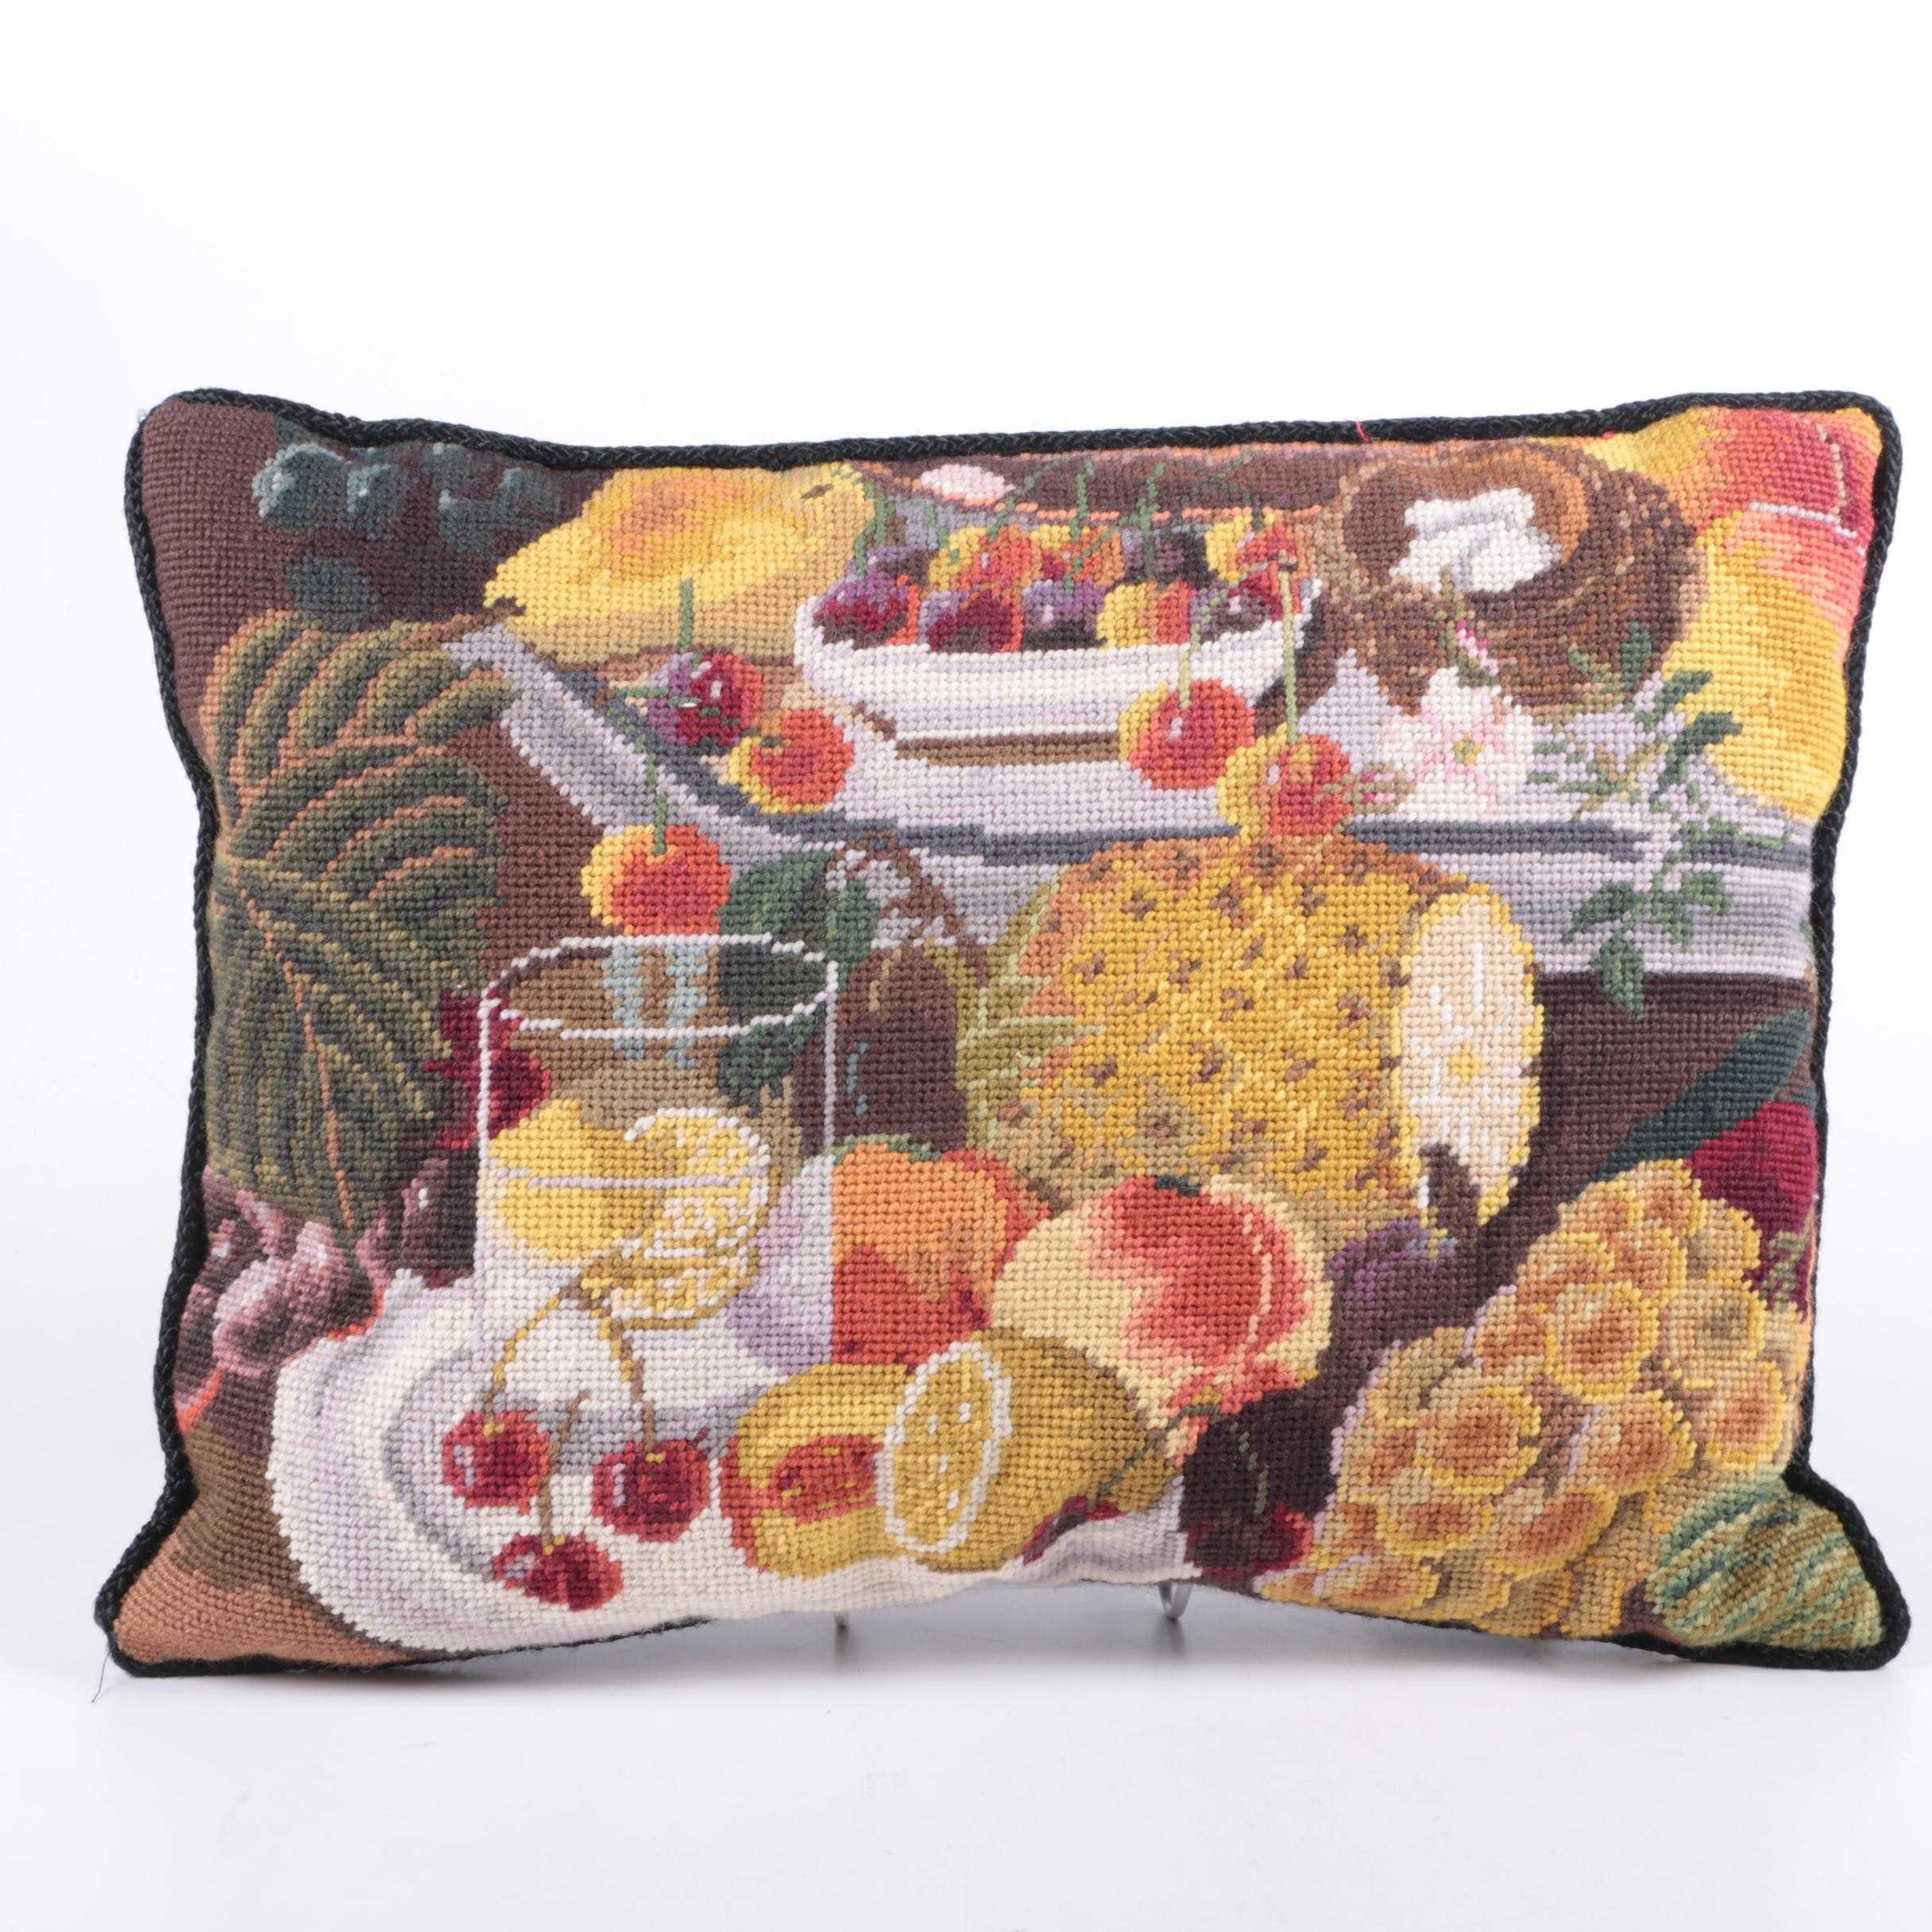 Katha Didde Needlepoint Pillow